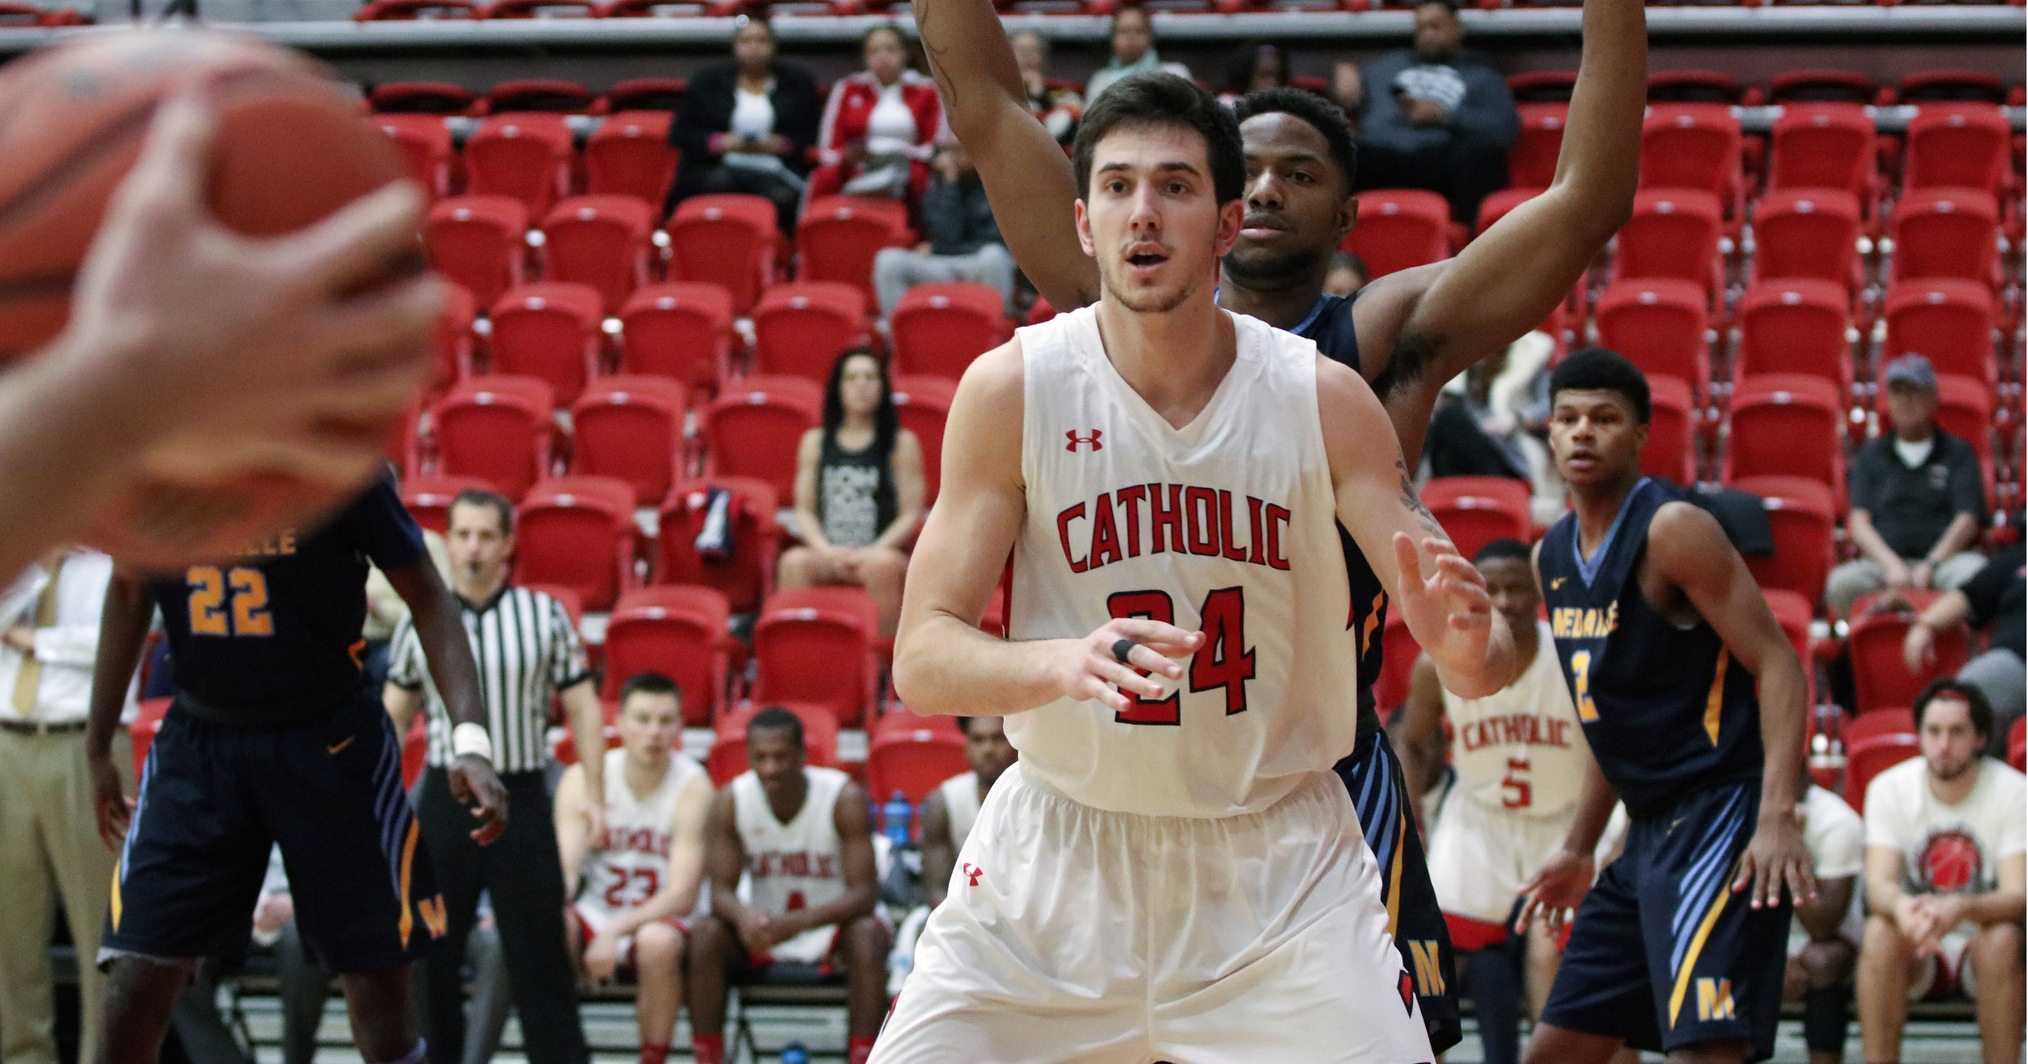 Cardinals' Upset Bid Falls Short Against No. 17 Rochester